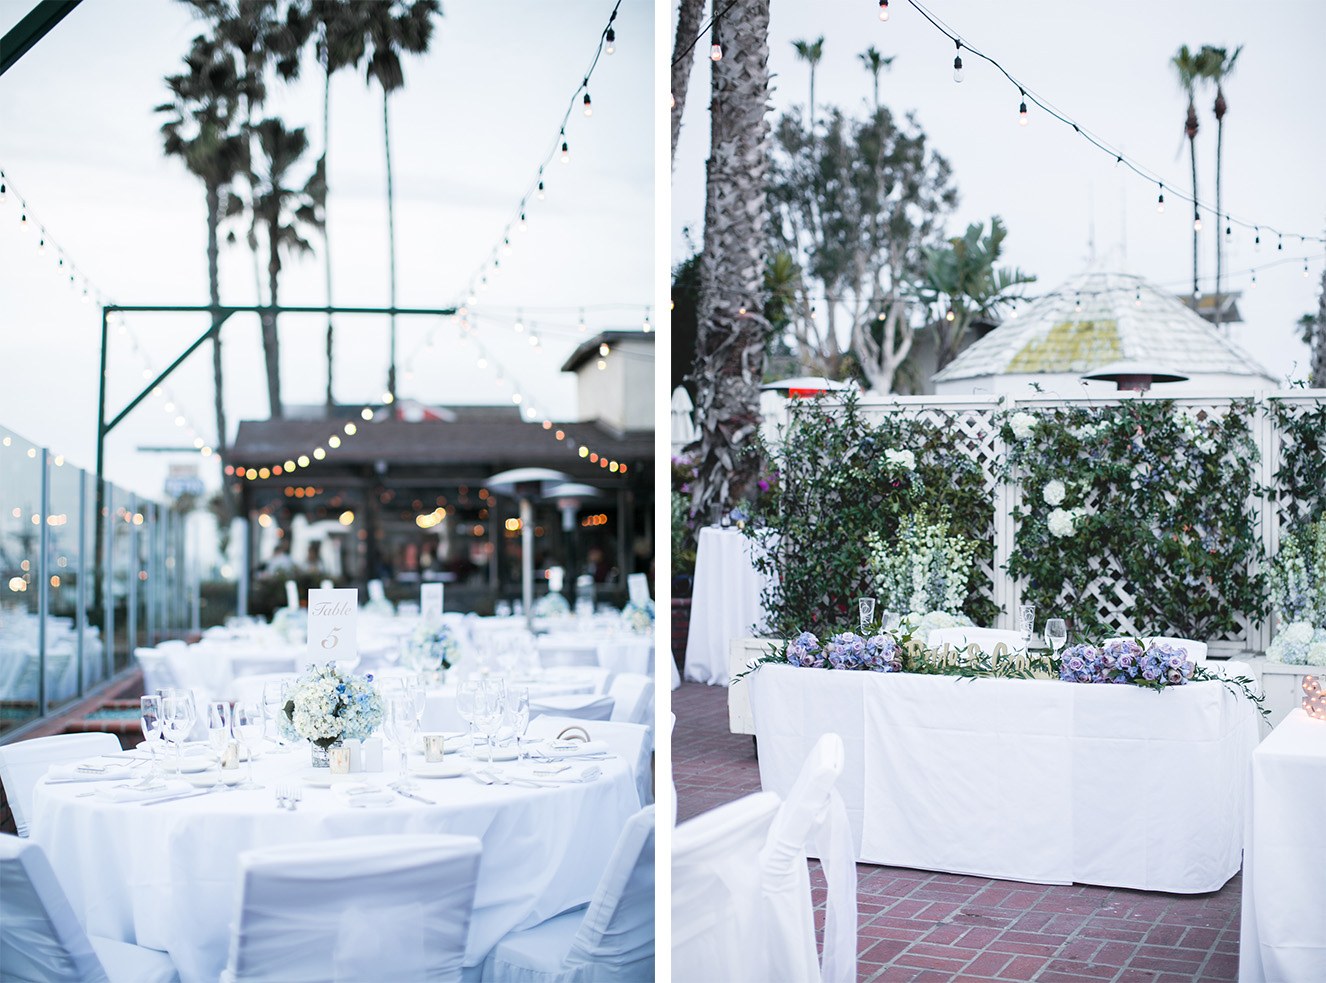 The market hanging lights are so beautiful to capture in photos. And look how cute their sweet heart table was!